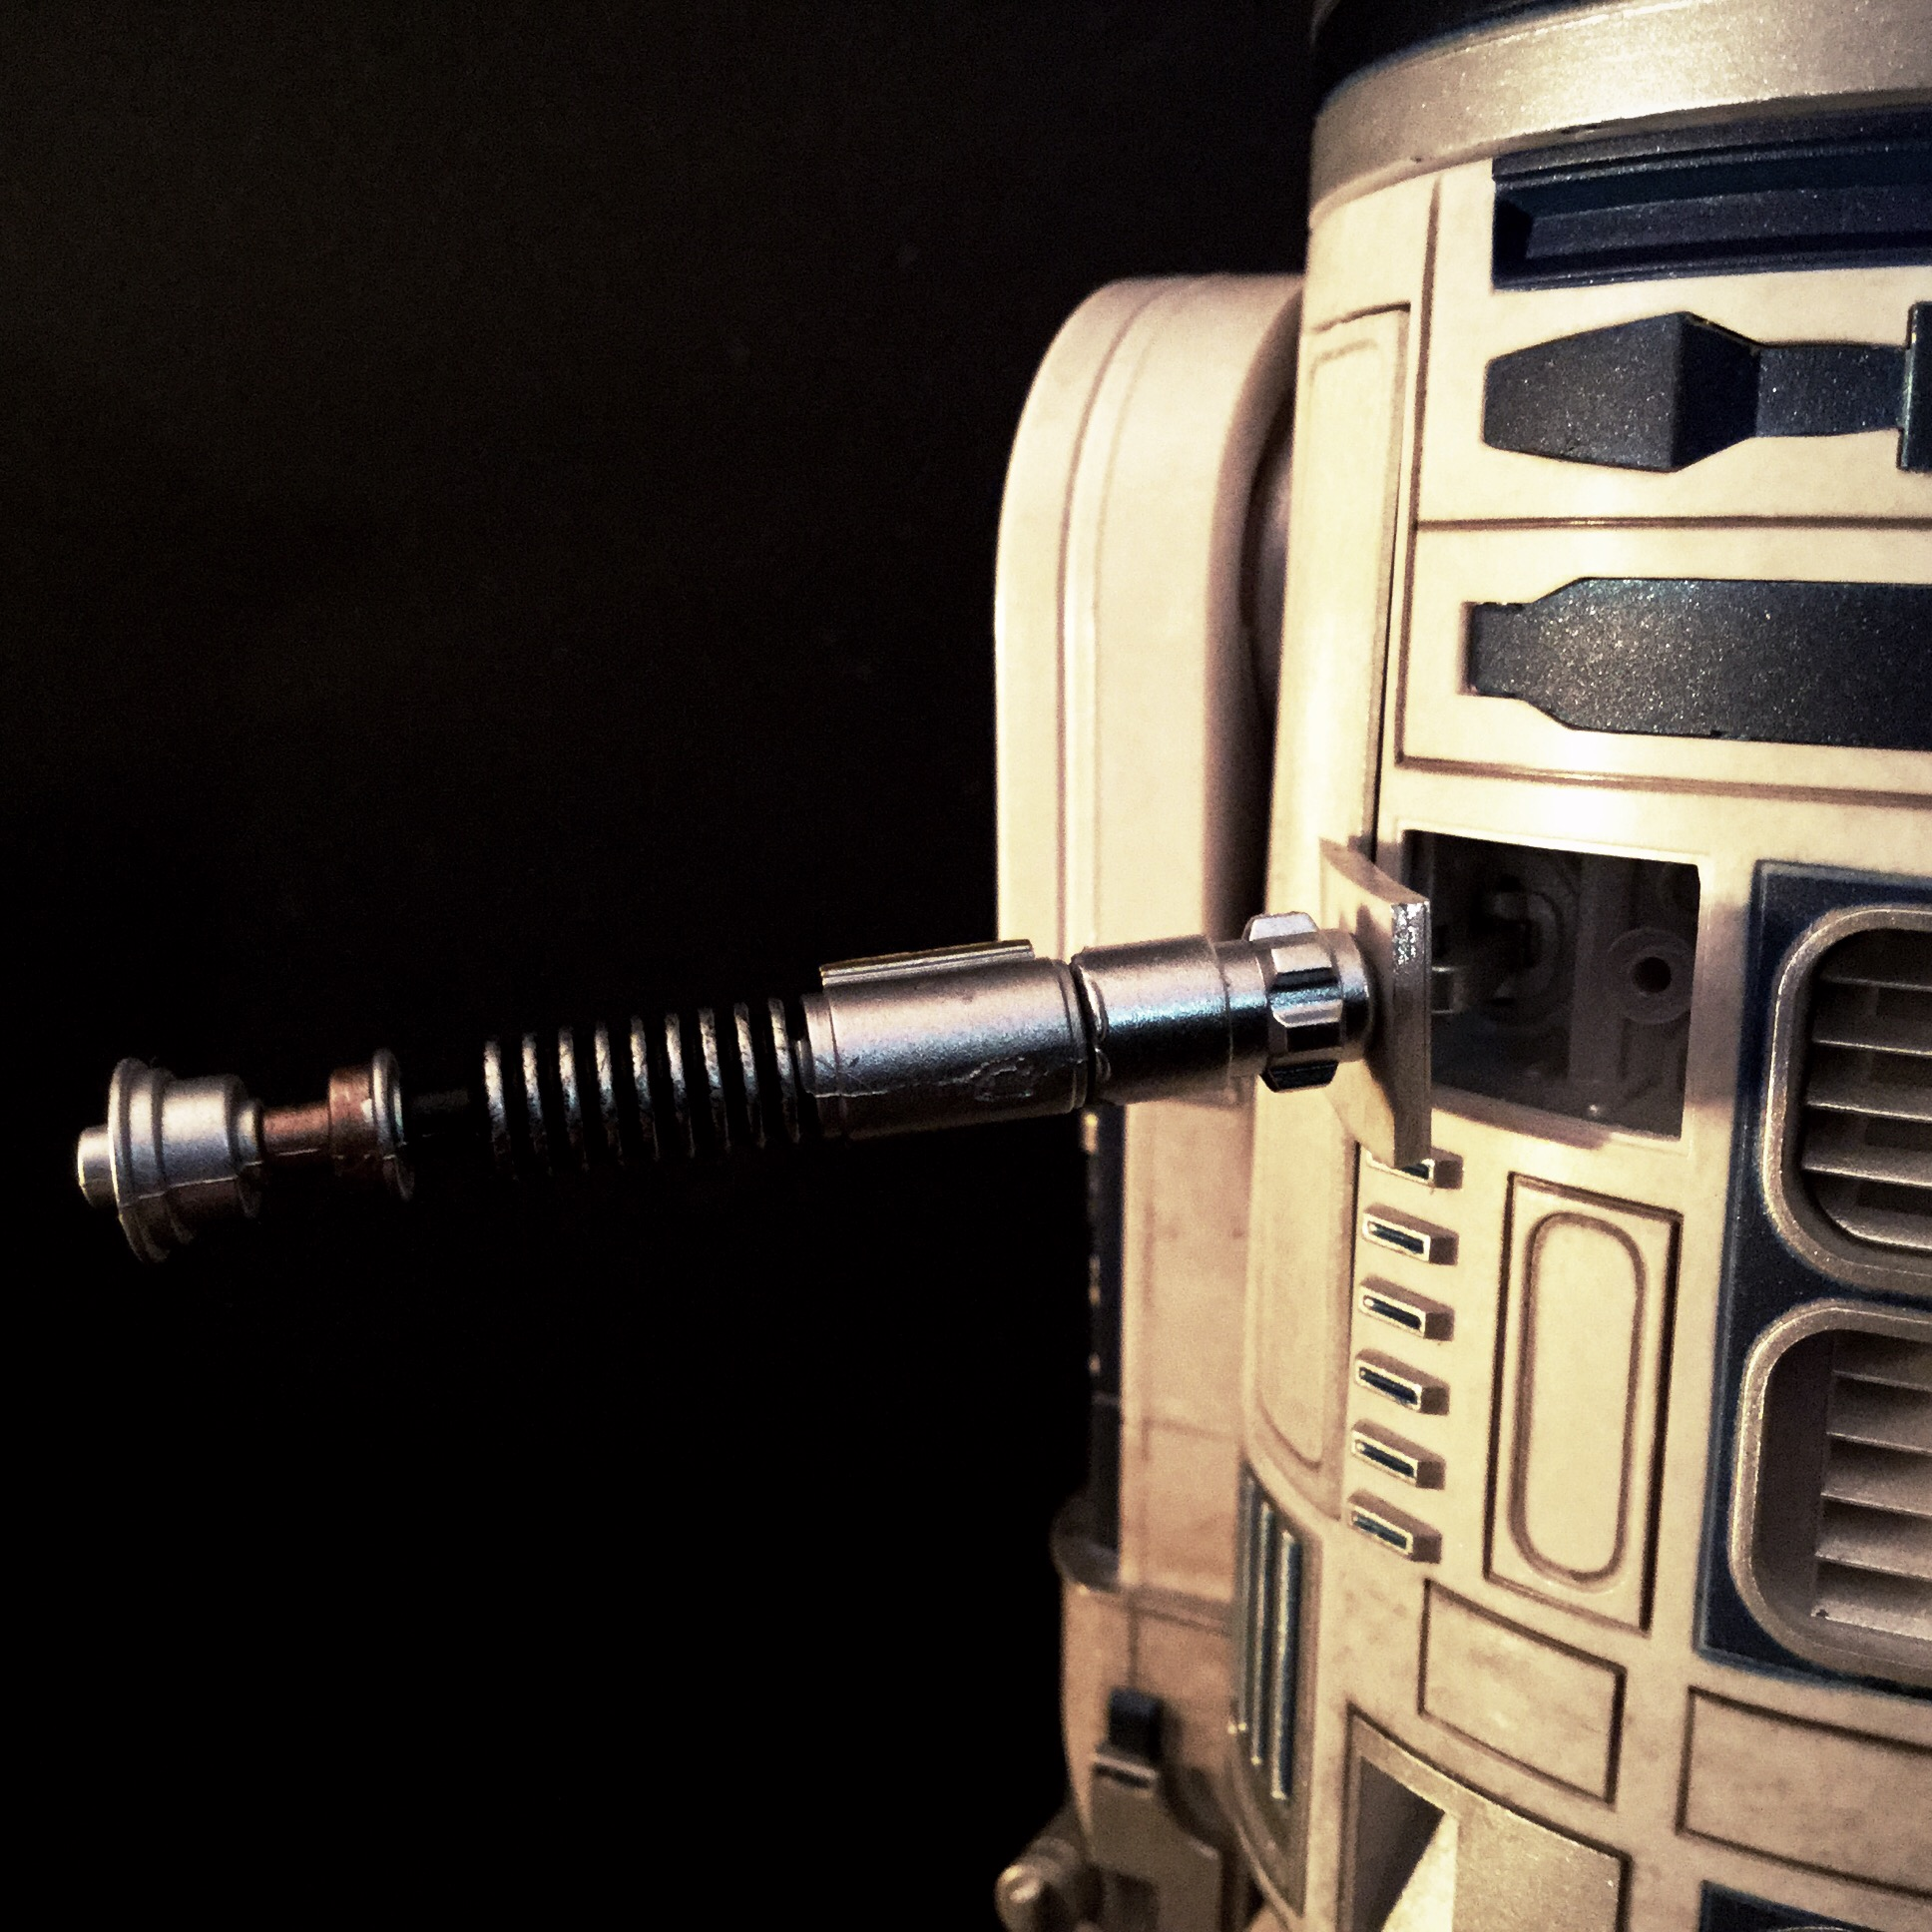 [REVIEW] Star Wars : R2-D2 Deluxe (Sideshow) 16442329481_ce3834f491_o